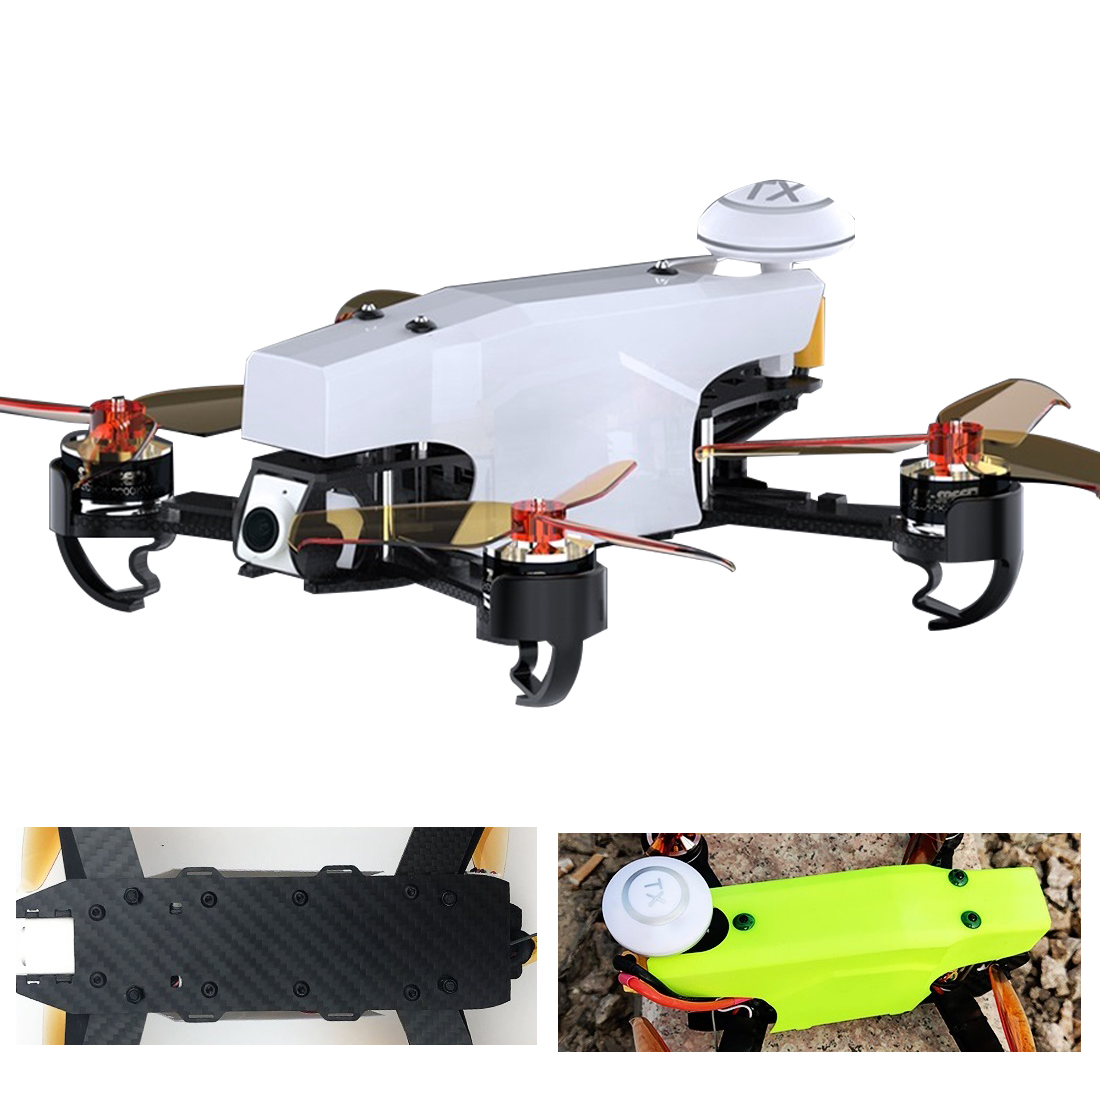 US $166 59 15% OFF|210 100KM/H High Speed 10mins Flight 5 8G FPV DVR 720P  Camera GPS OSD Mini PIX Brushless RC Racer Drone-in RC Helicopters from  Toys